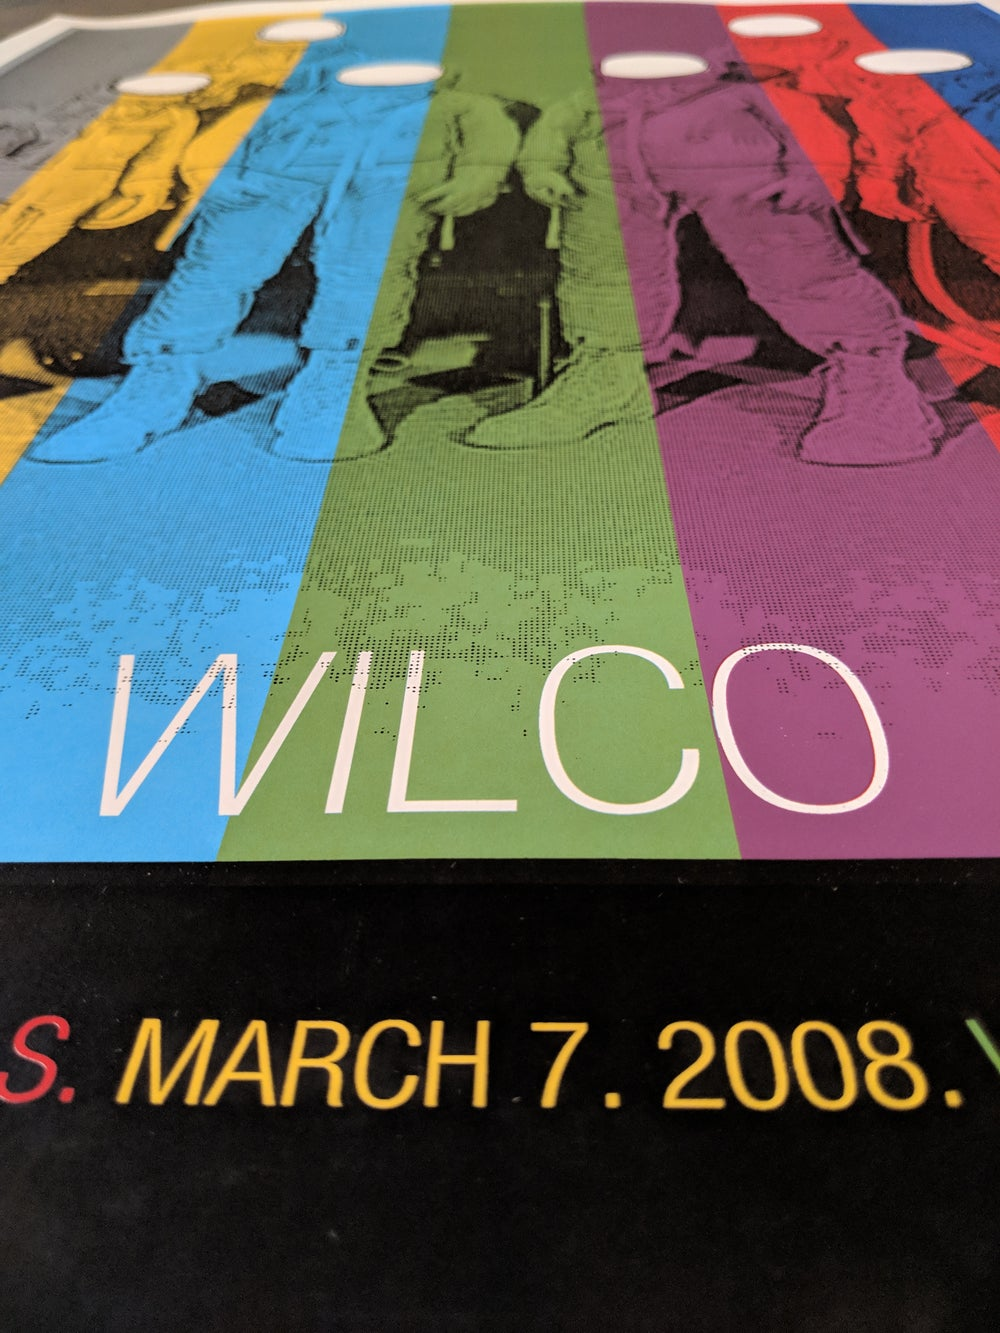 Wilco (Astronauts), Houston, Texas